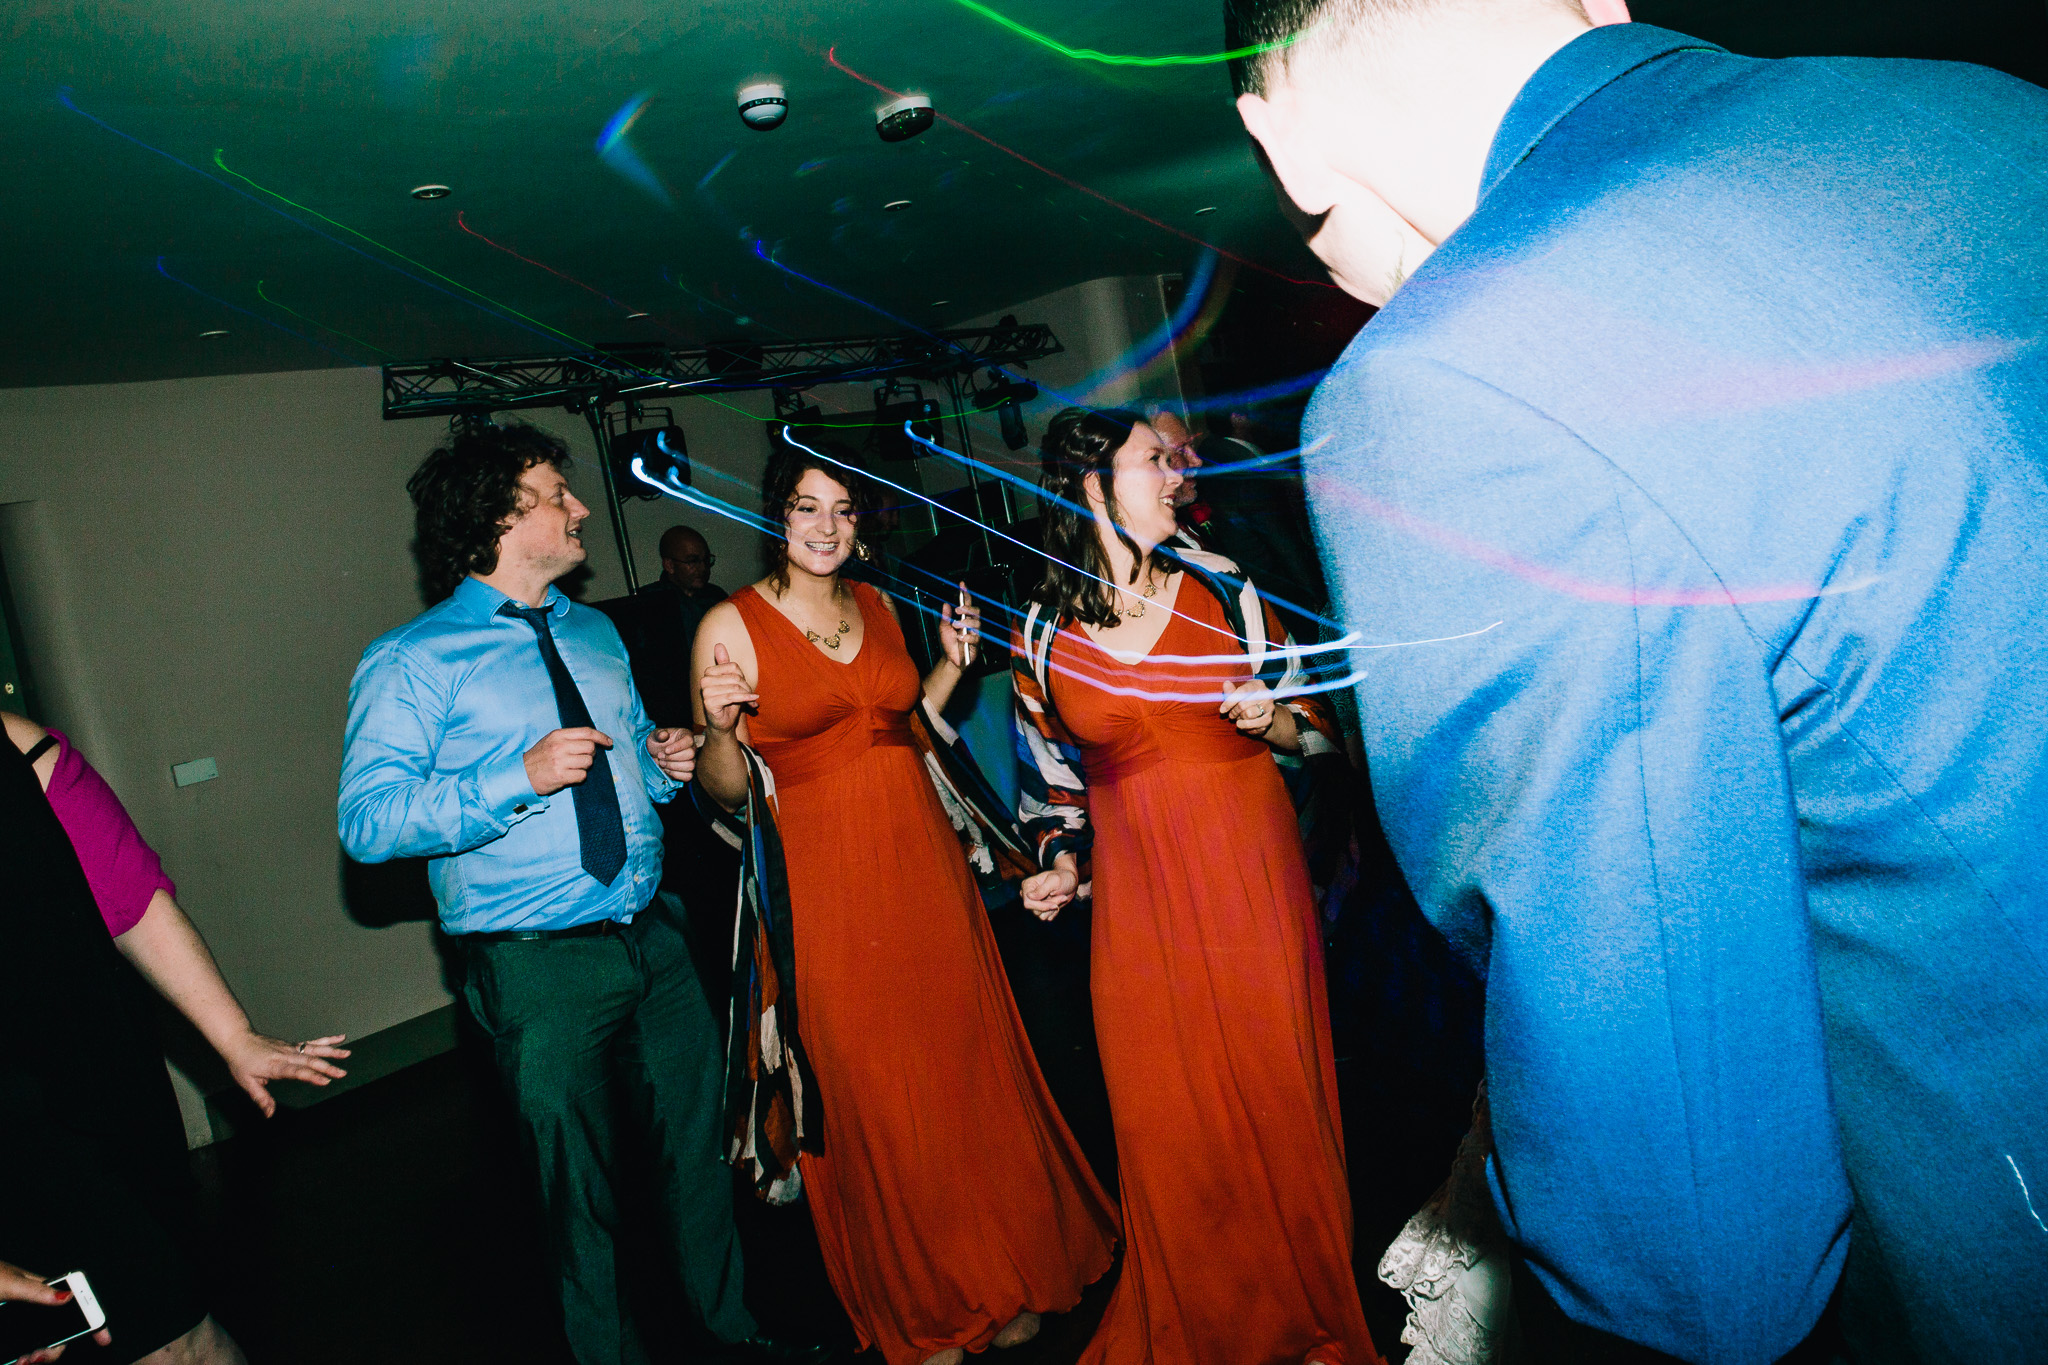 WEDDING GUESTS DANCE AT EVENING RECEPTION PARTY